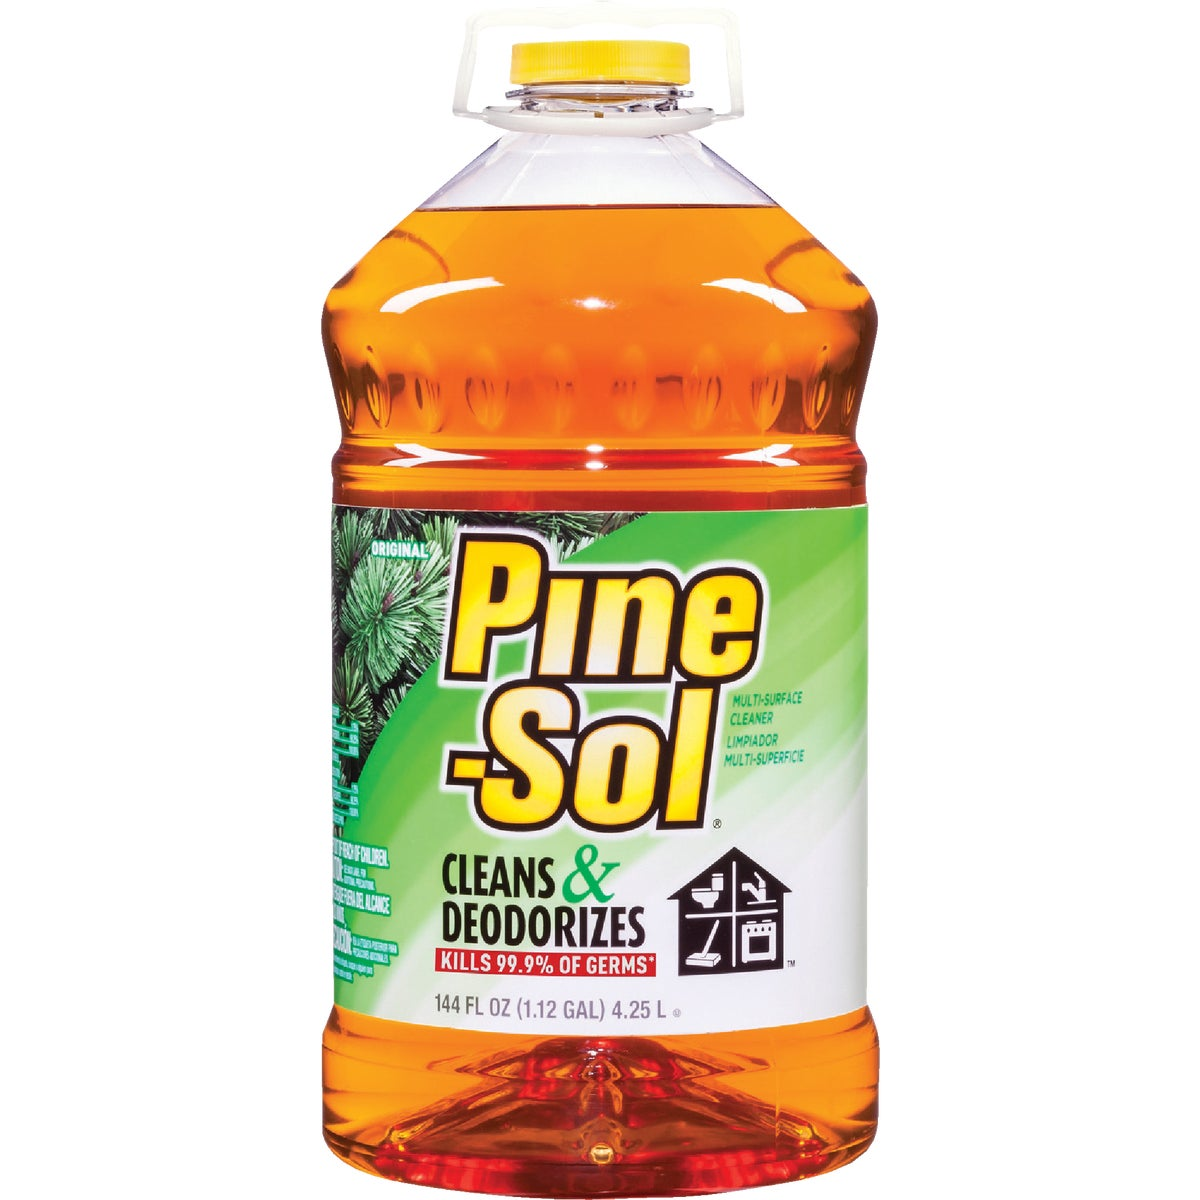 144OZ ORIGINAL PINE-SOL - 42464 by Clorox/home Cleaning